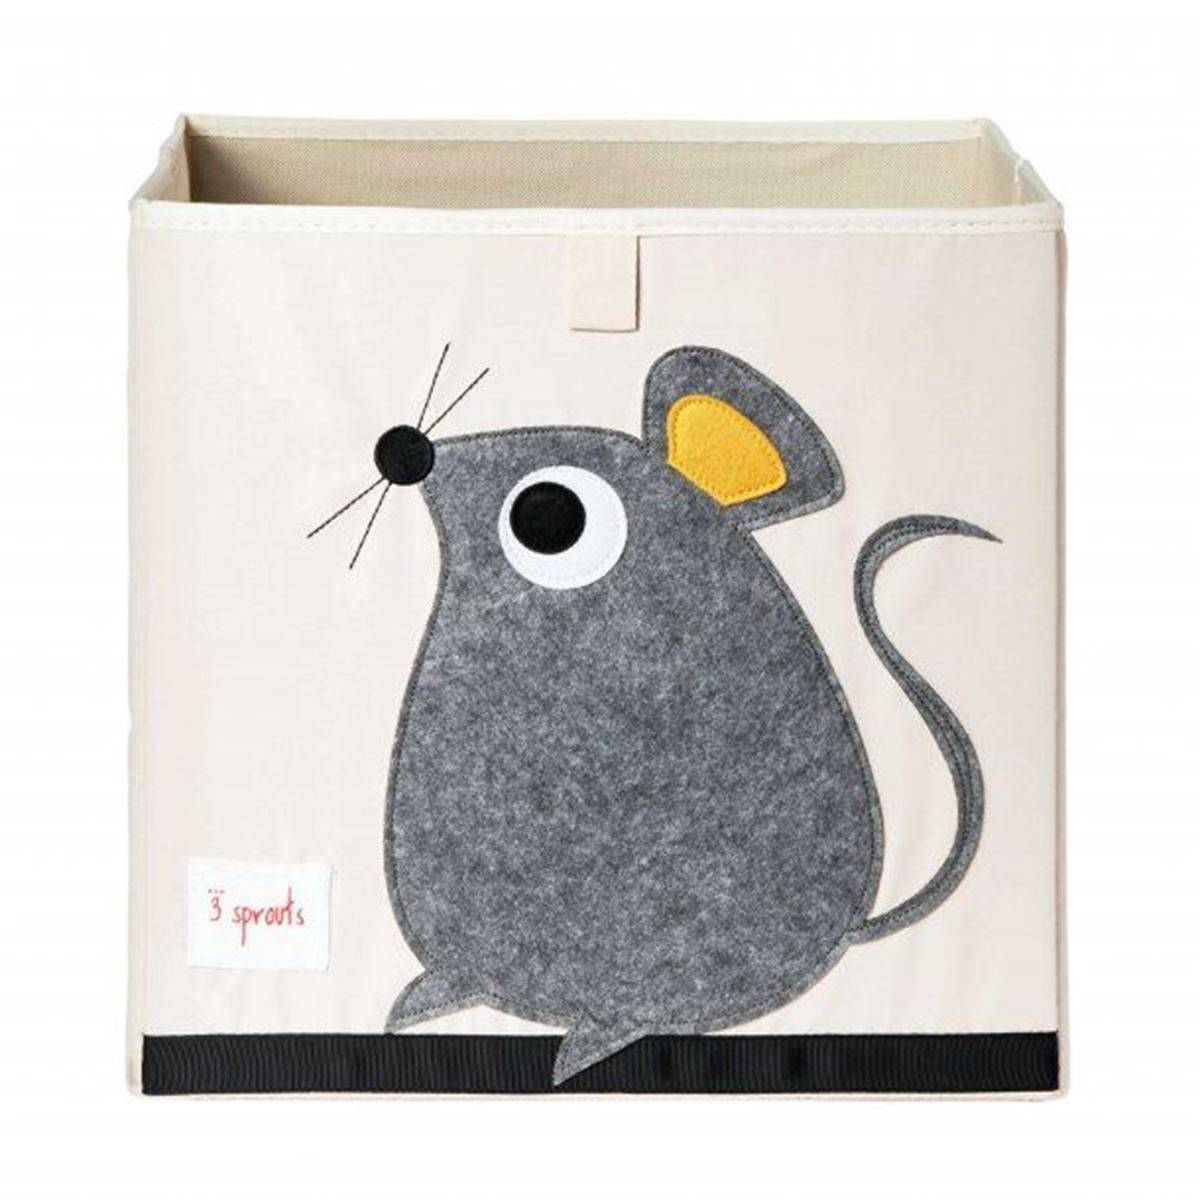 3 Sprouts Oppbevaringskasse, Mouse